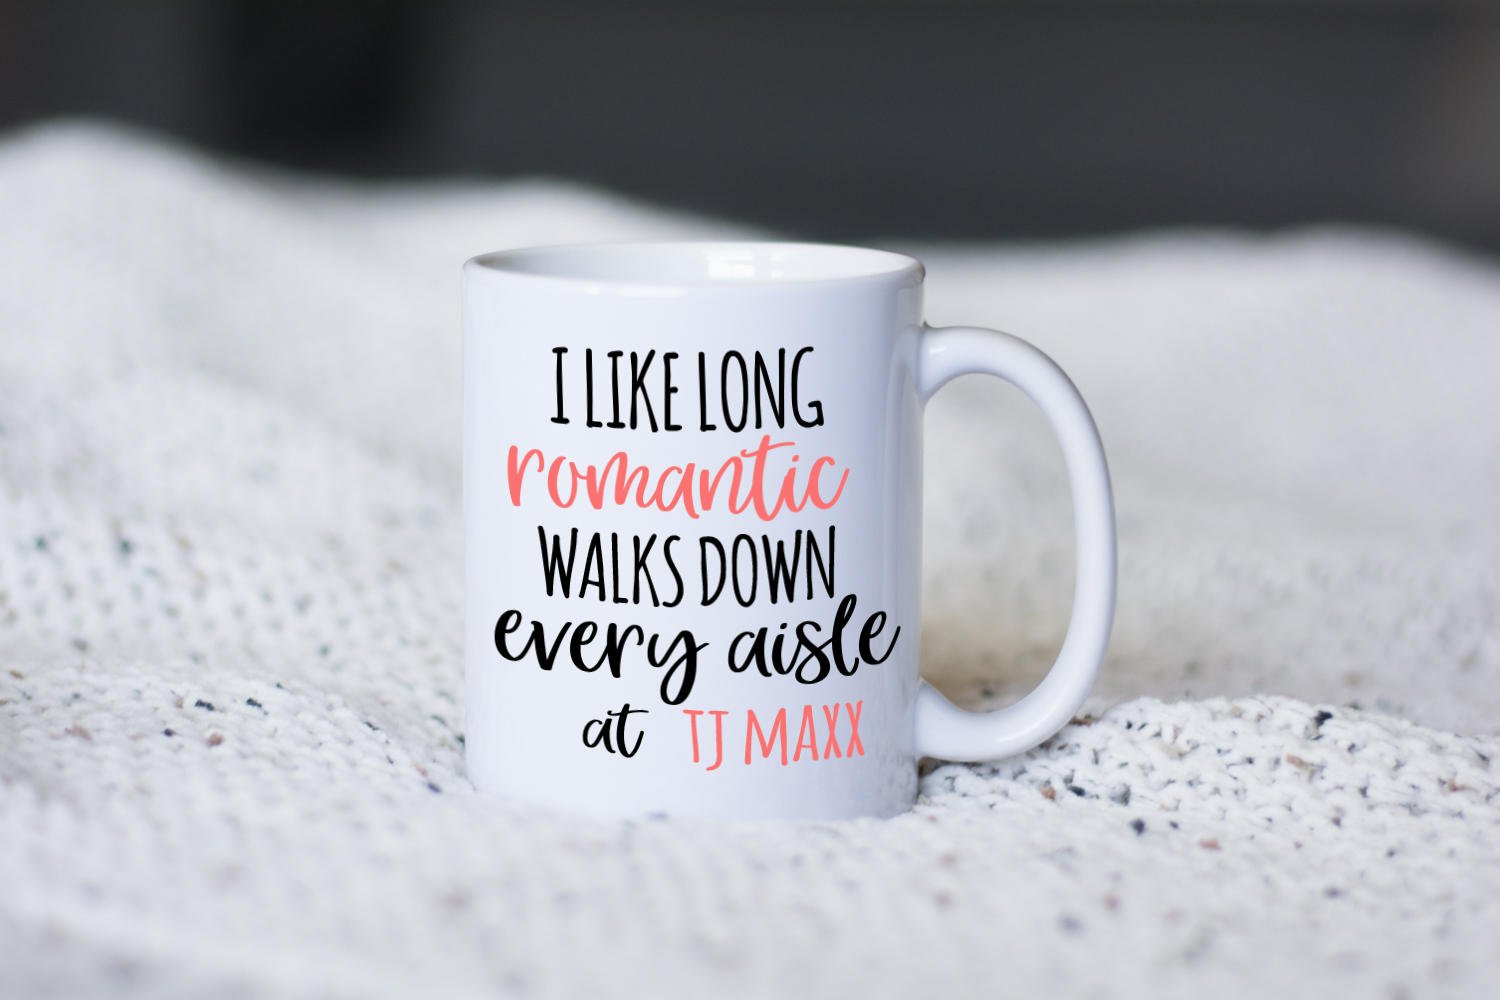 gifts for her gifts for bff gift for girlfriend gift shopping stocking stuffer funny coffee mug romantic walks through tj maxx 15oz 11oz